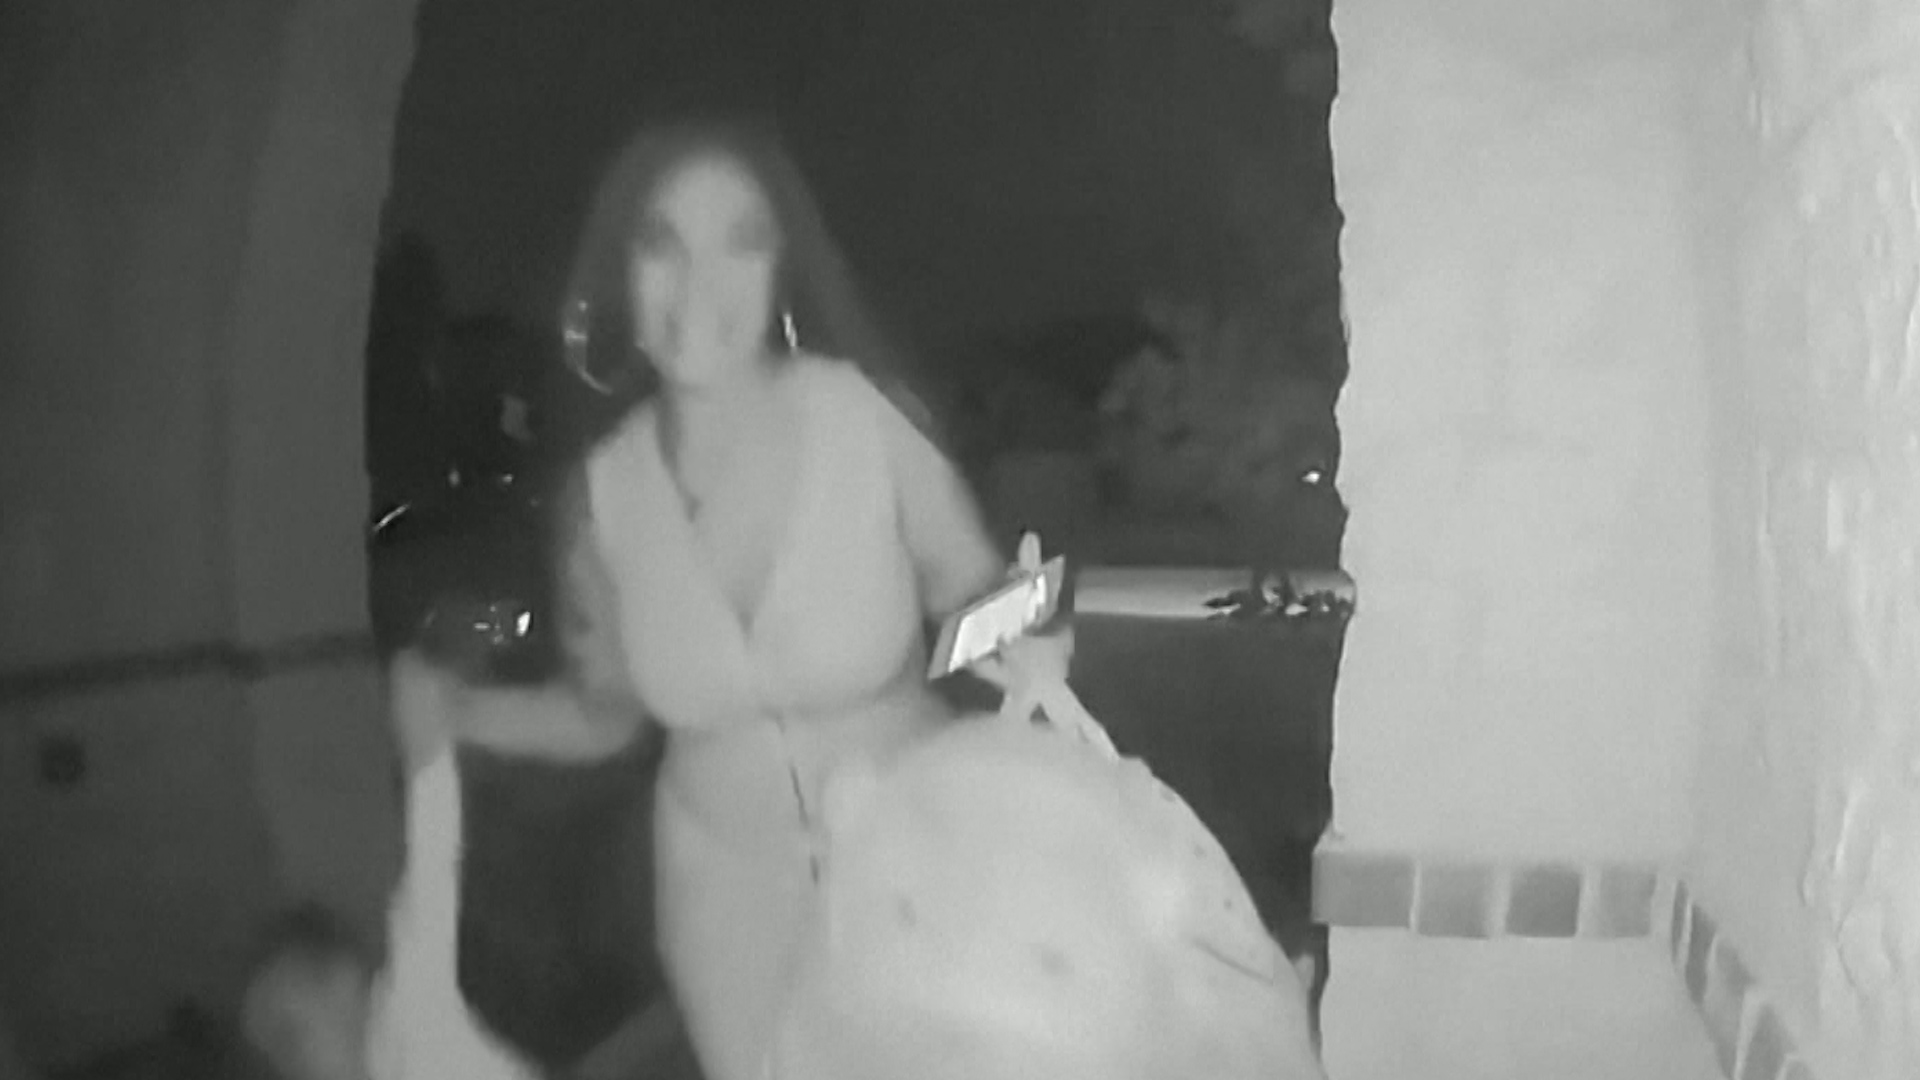 Caught on Camera: Woman drops off toddler on doorstep, flees